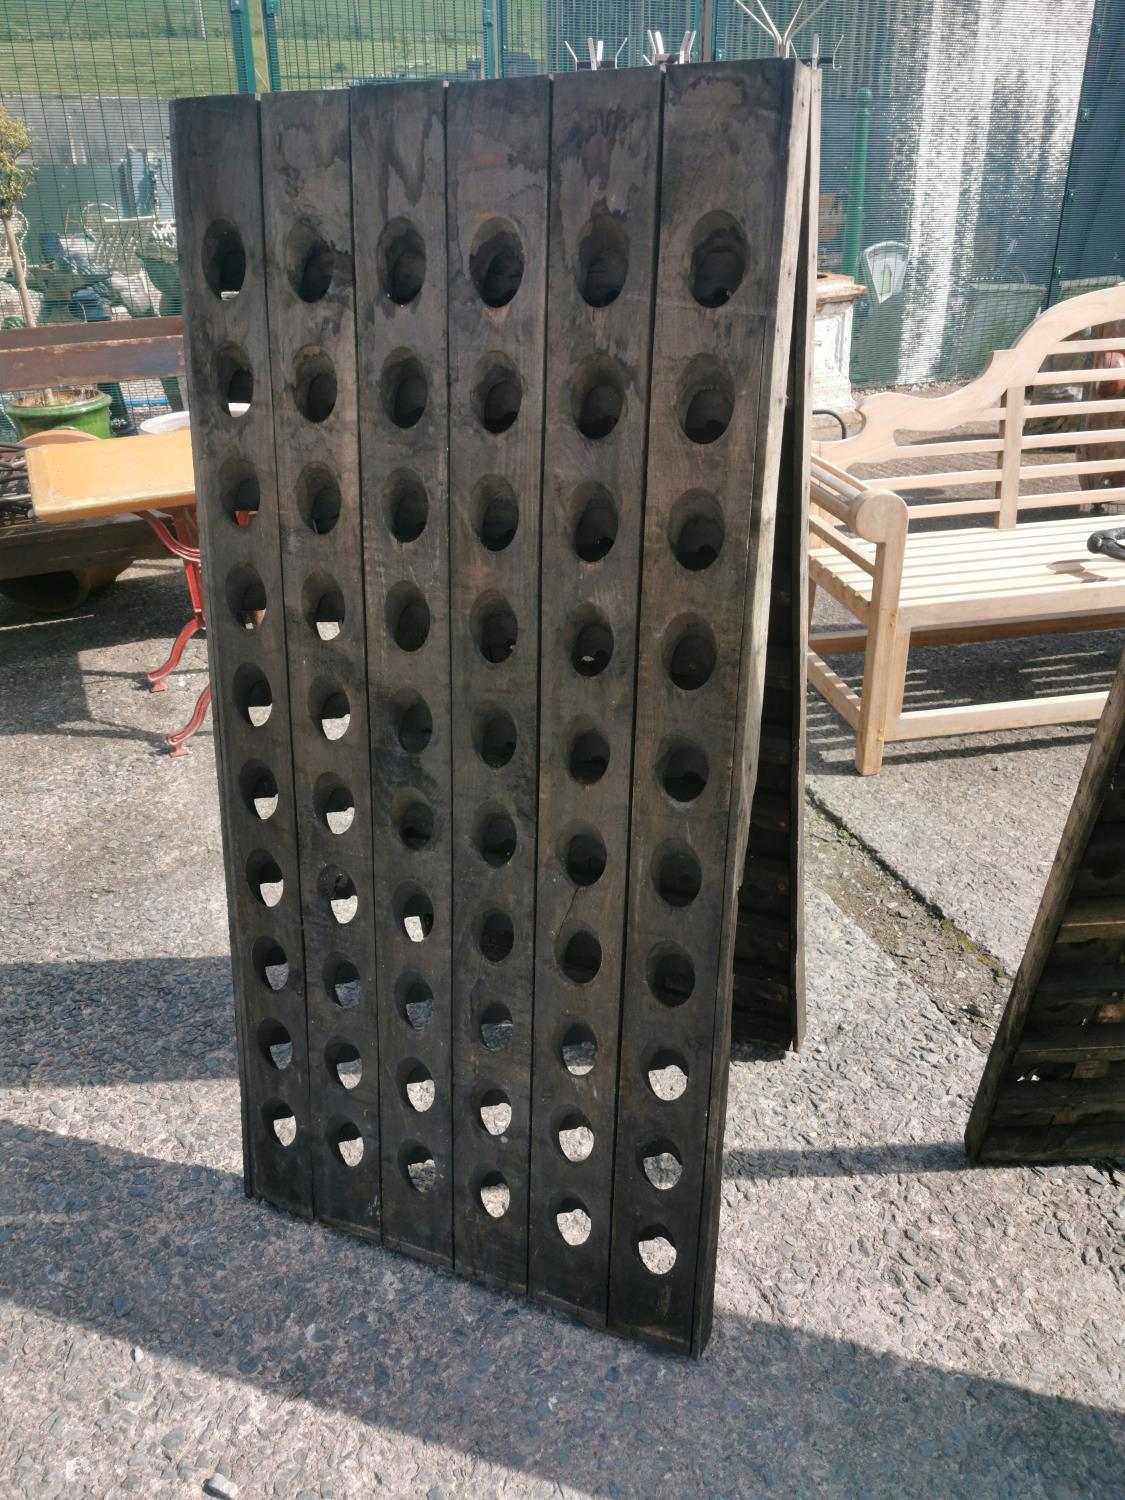 Early 20th C. wooden wine rack. - Image 2 of 2